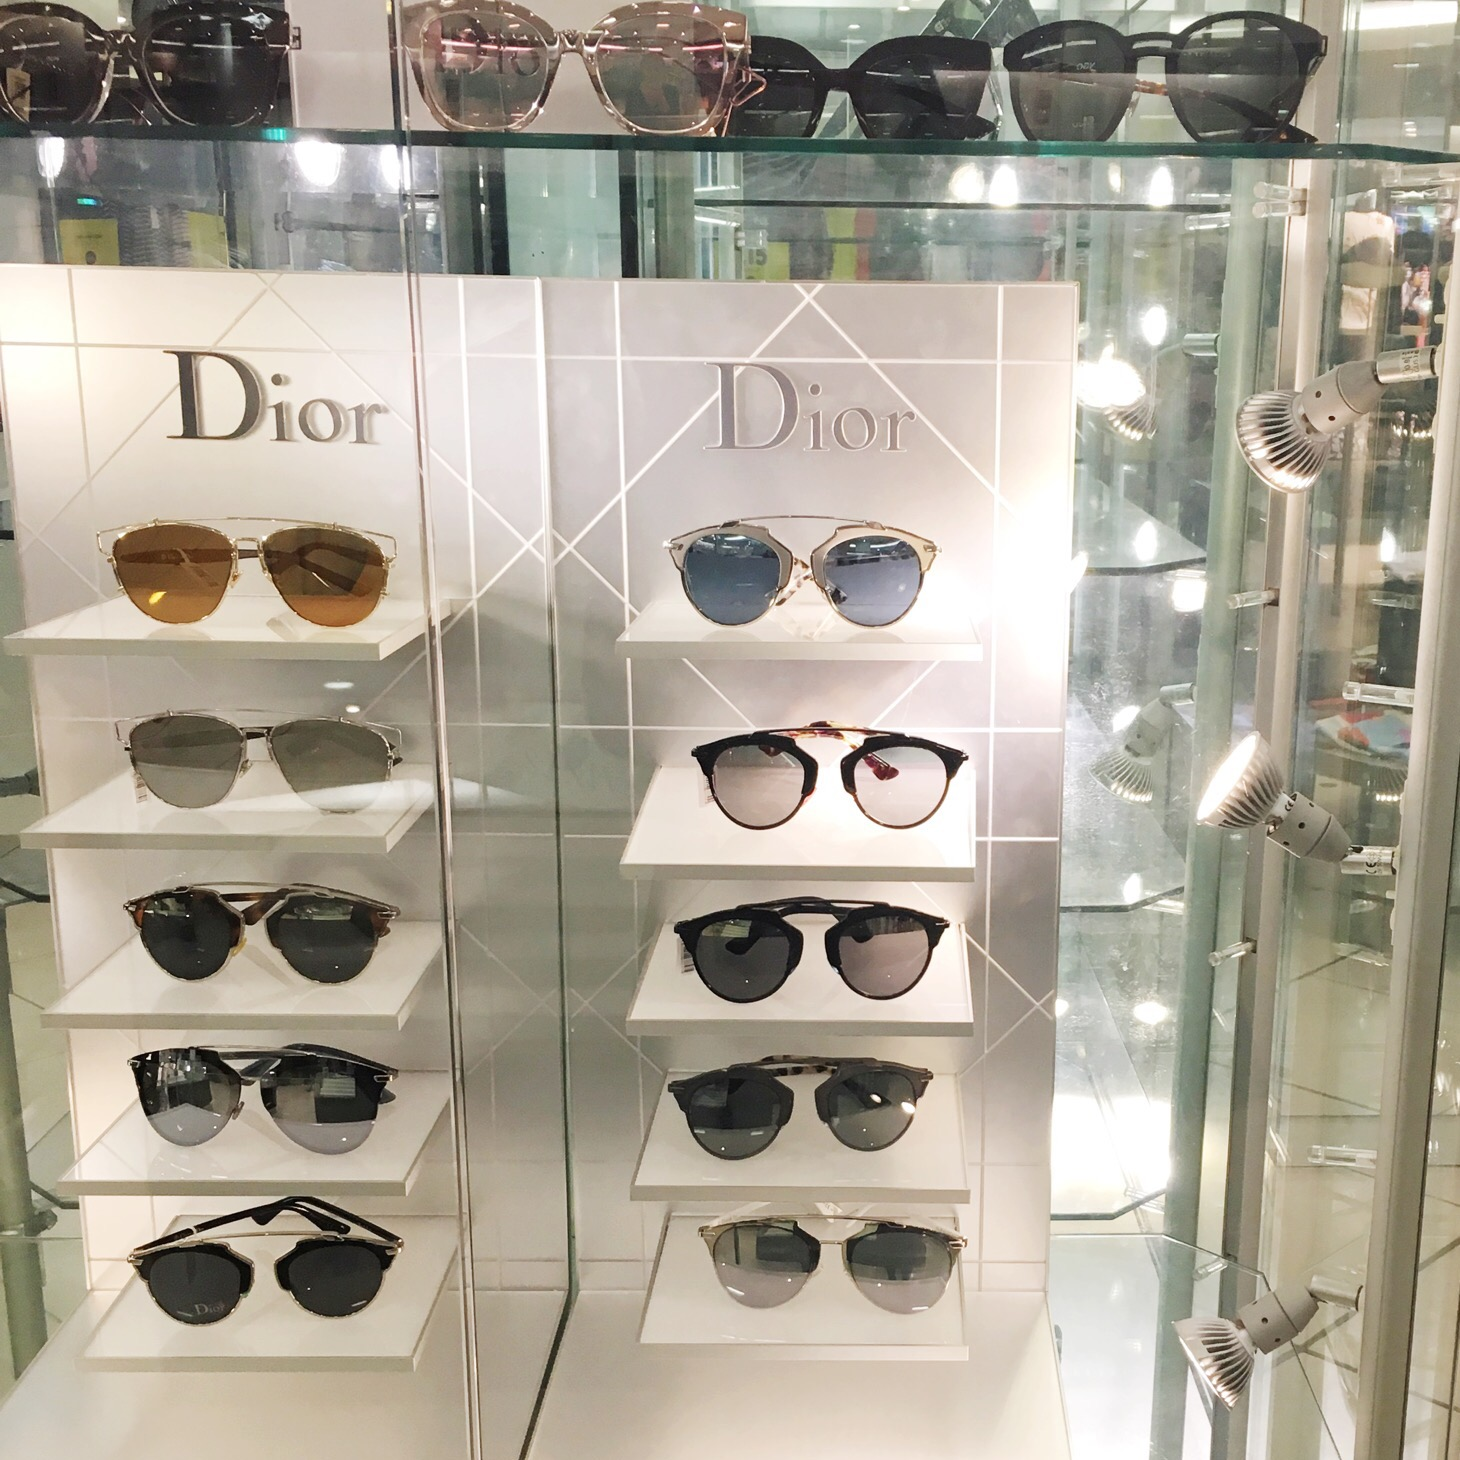 Dior Sunglasses at Fenwick Newcastle